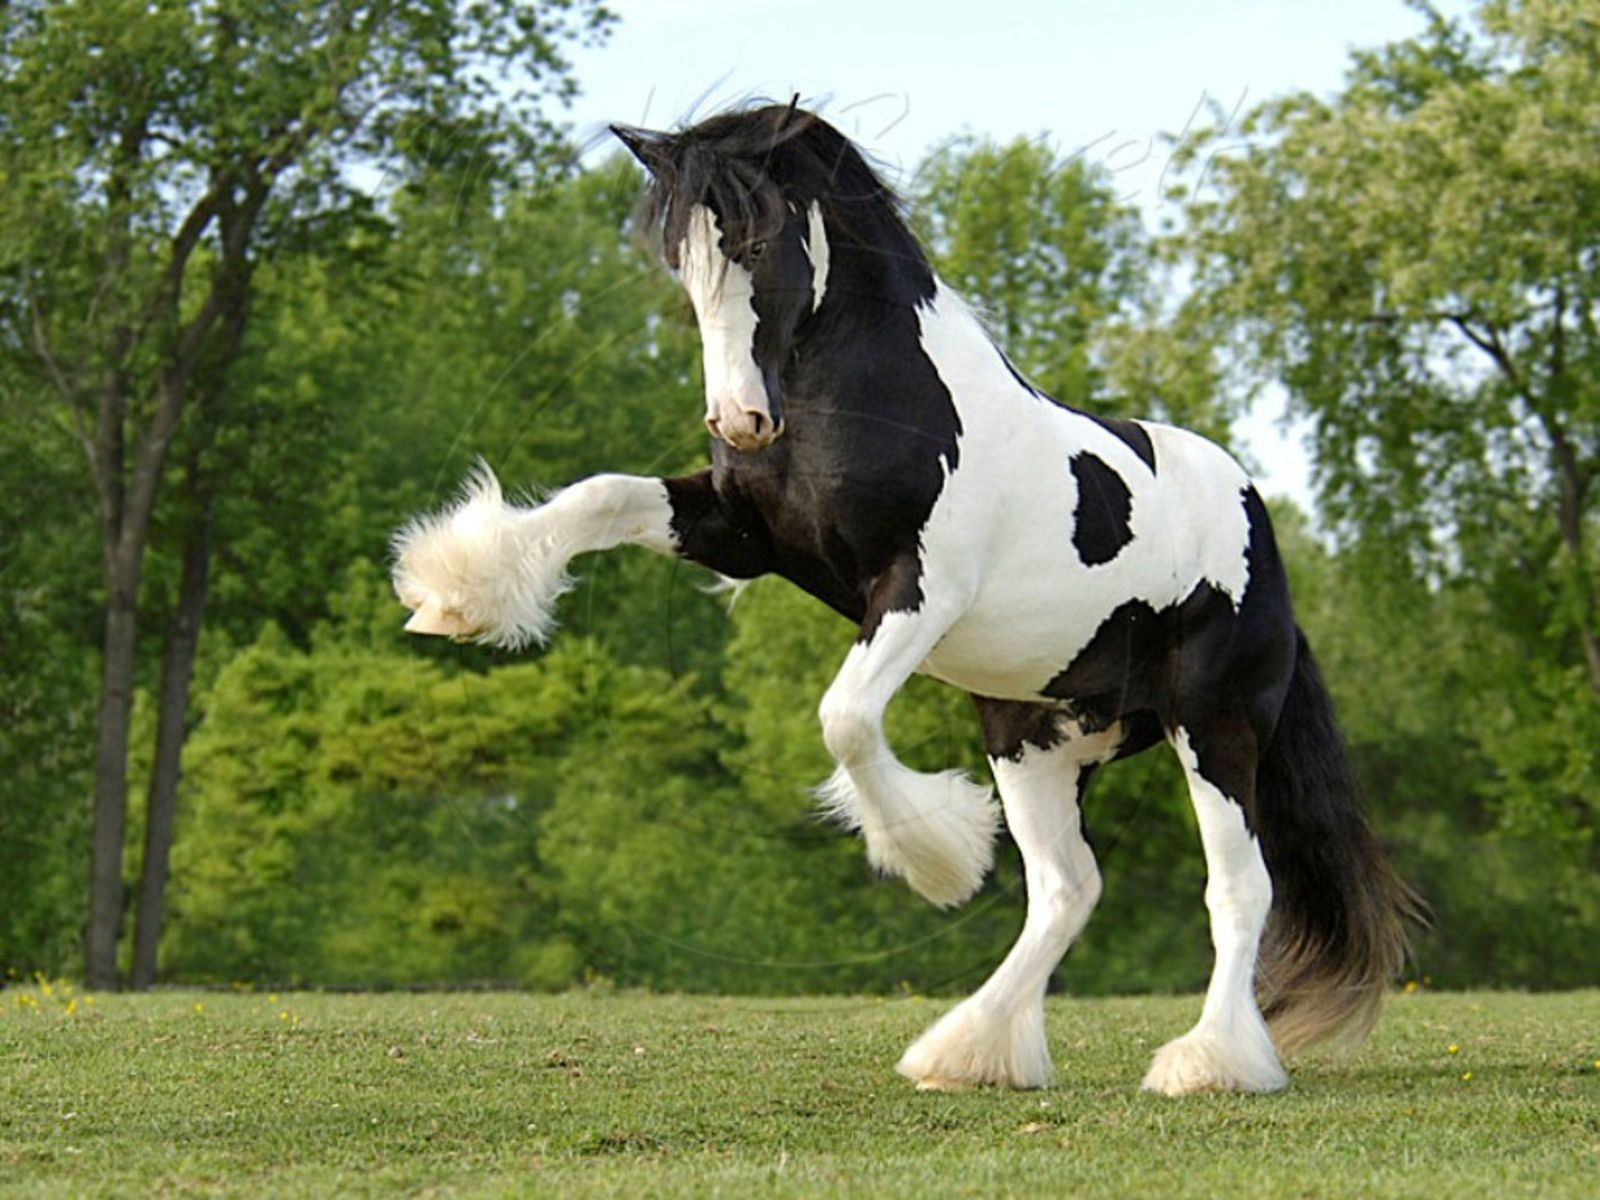 Images For Gt Beautiful Baby Horses Wallpaper 1600x1200PX